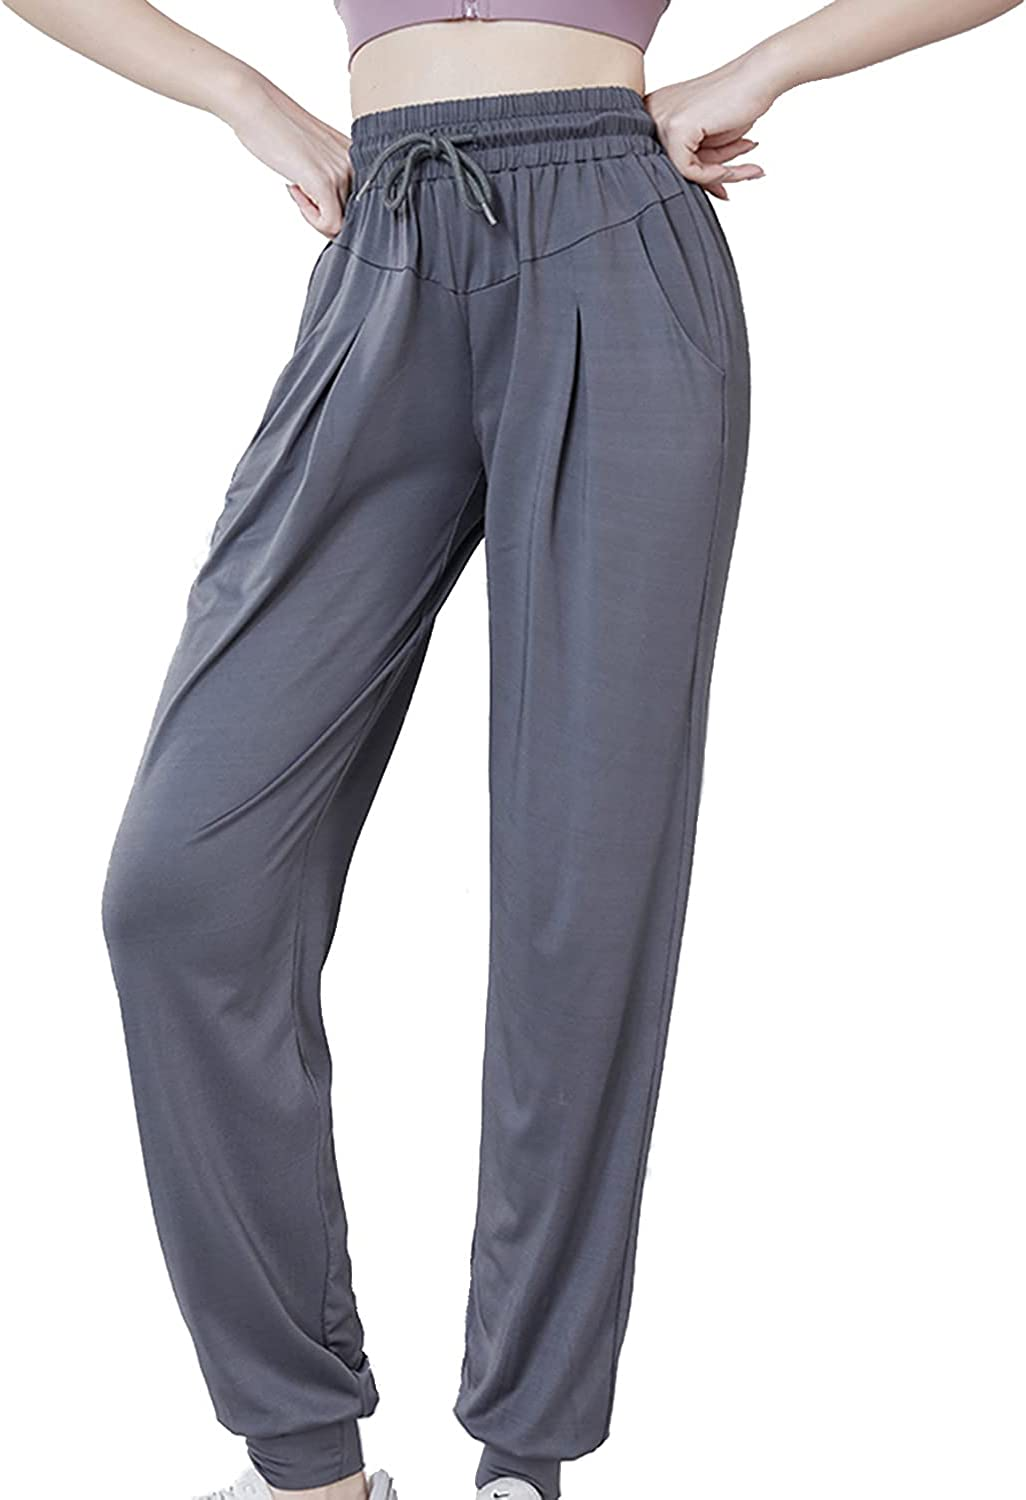 Schine Women's Jogger Pants High Waisted Sweatpants with Pockets Tapered Casual Lounge Pants Loose Track Cuff Leggings